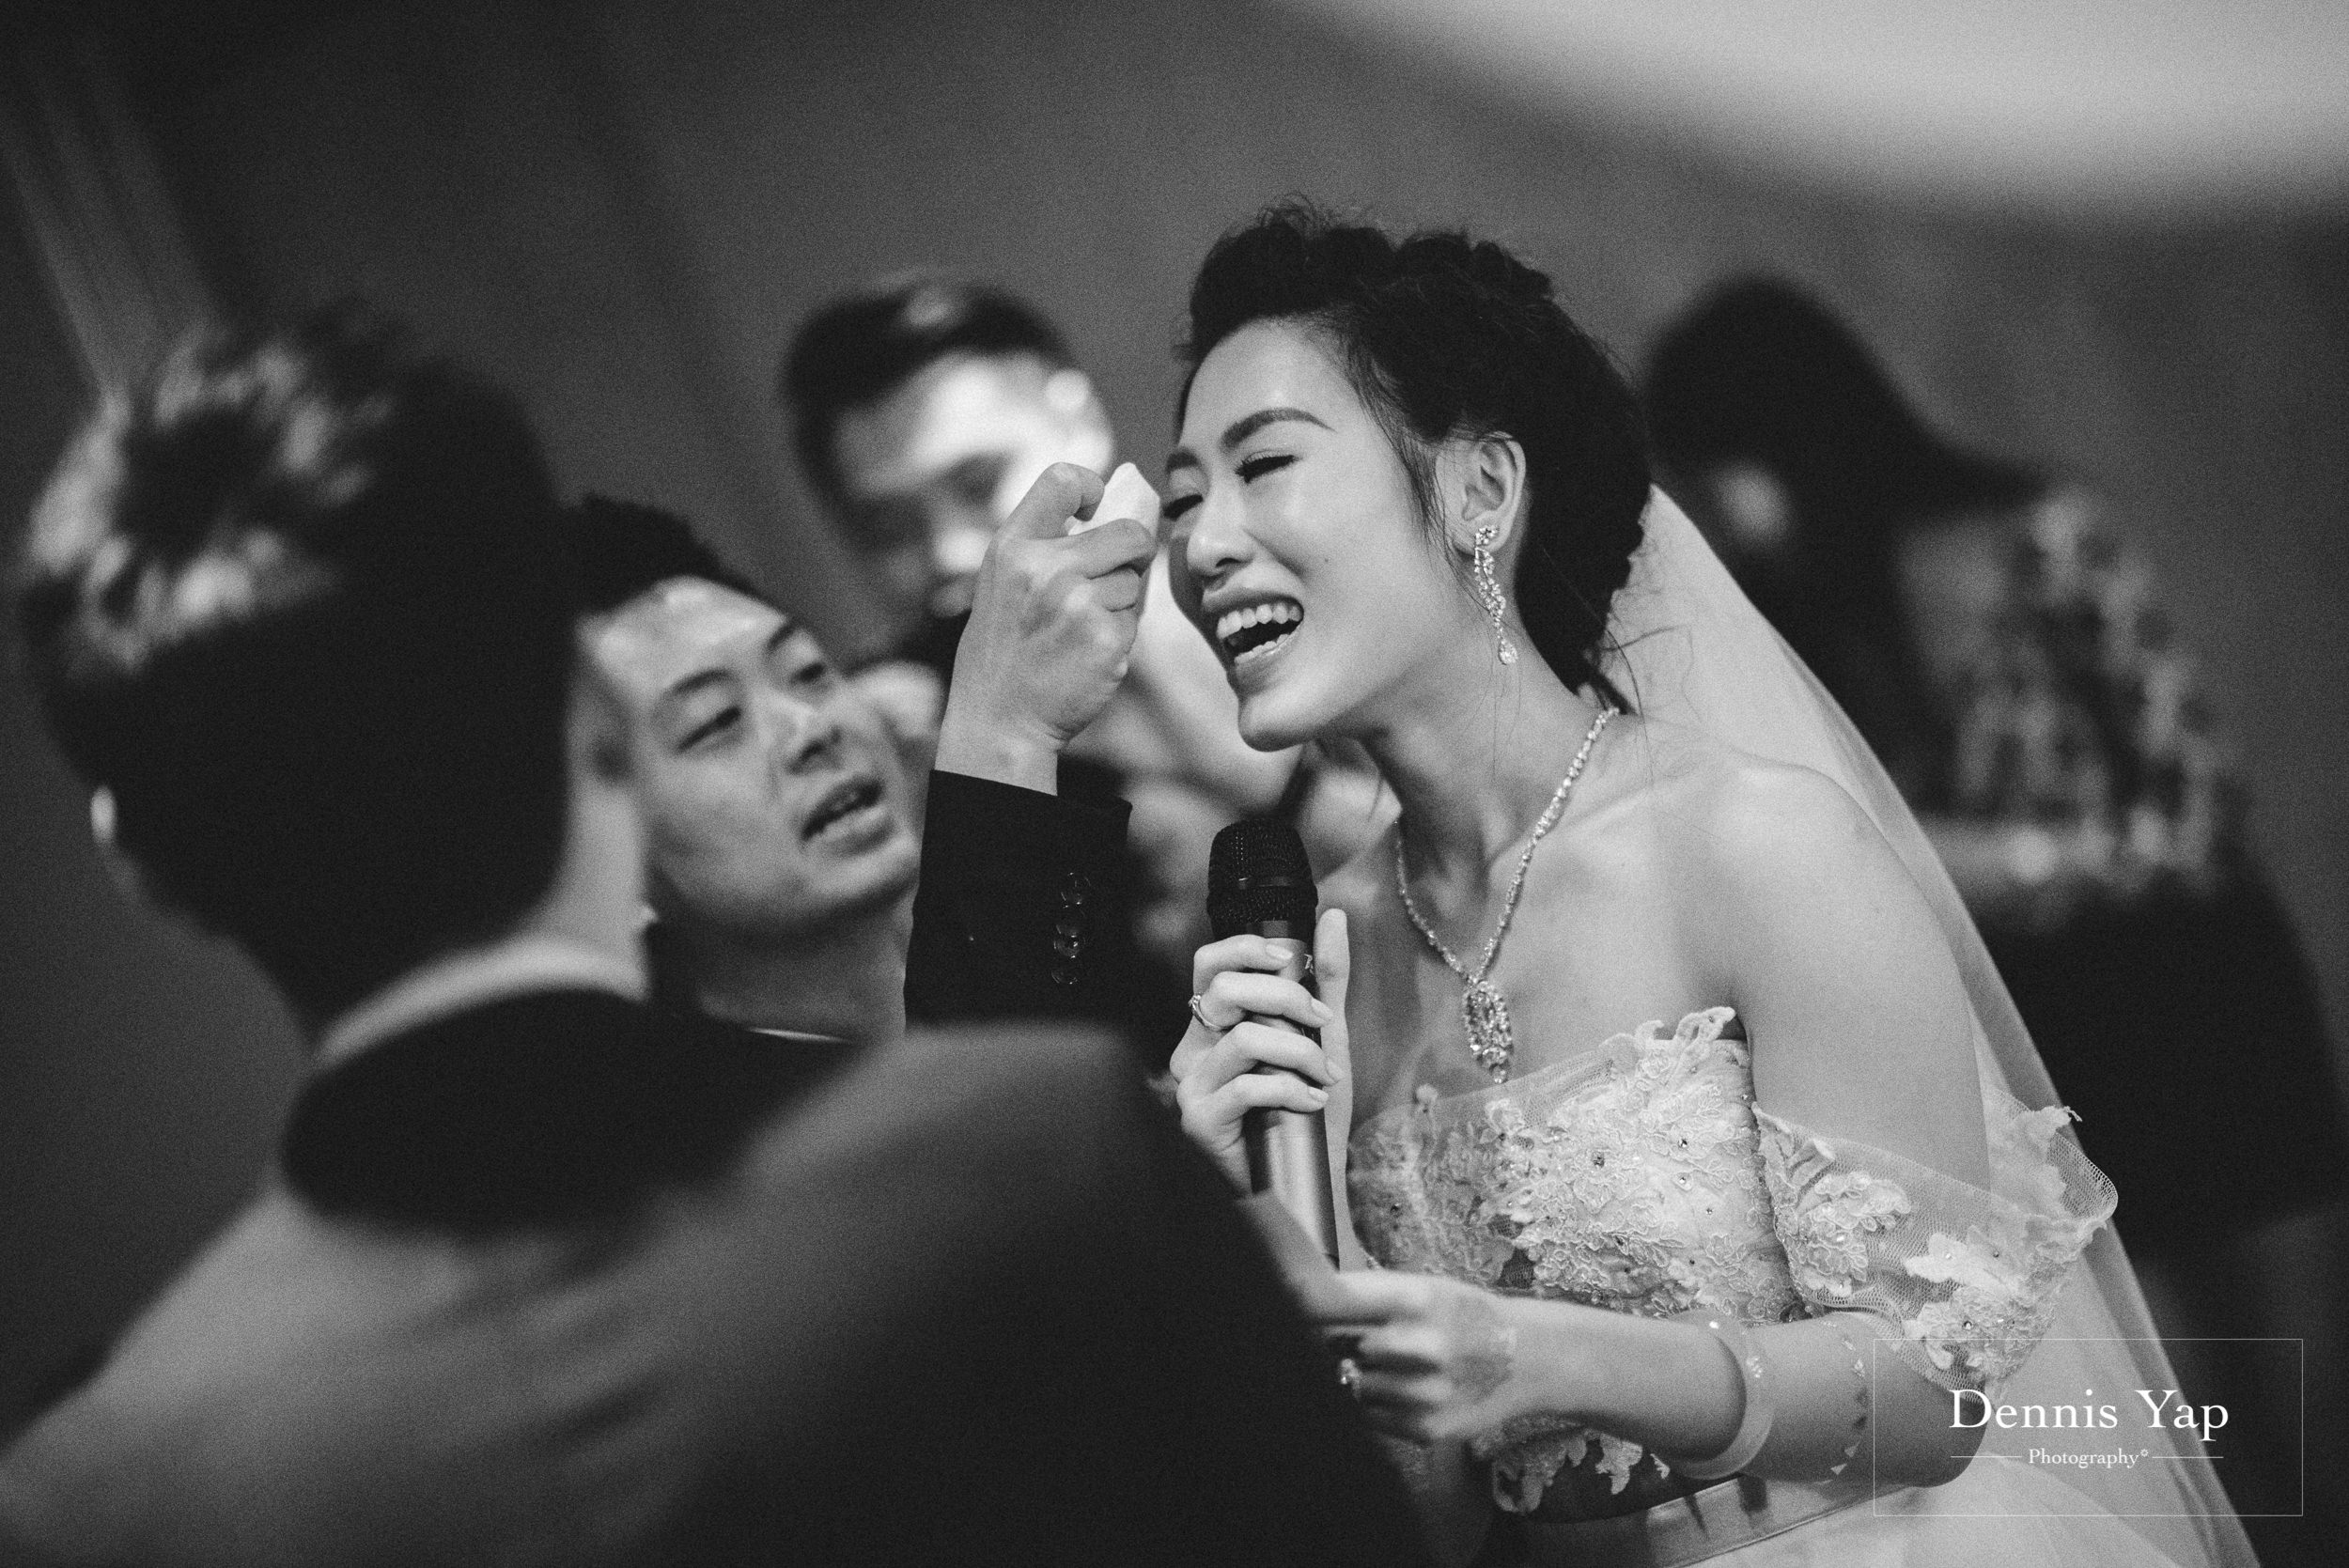 ser siang sze liang rom registration of marriage KL journal hotel dennis yap photography-15.jpg